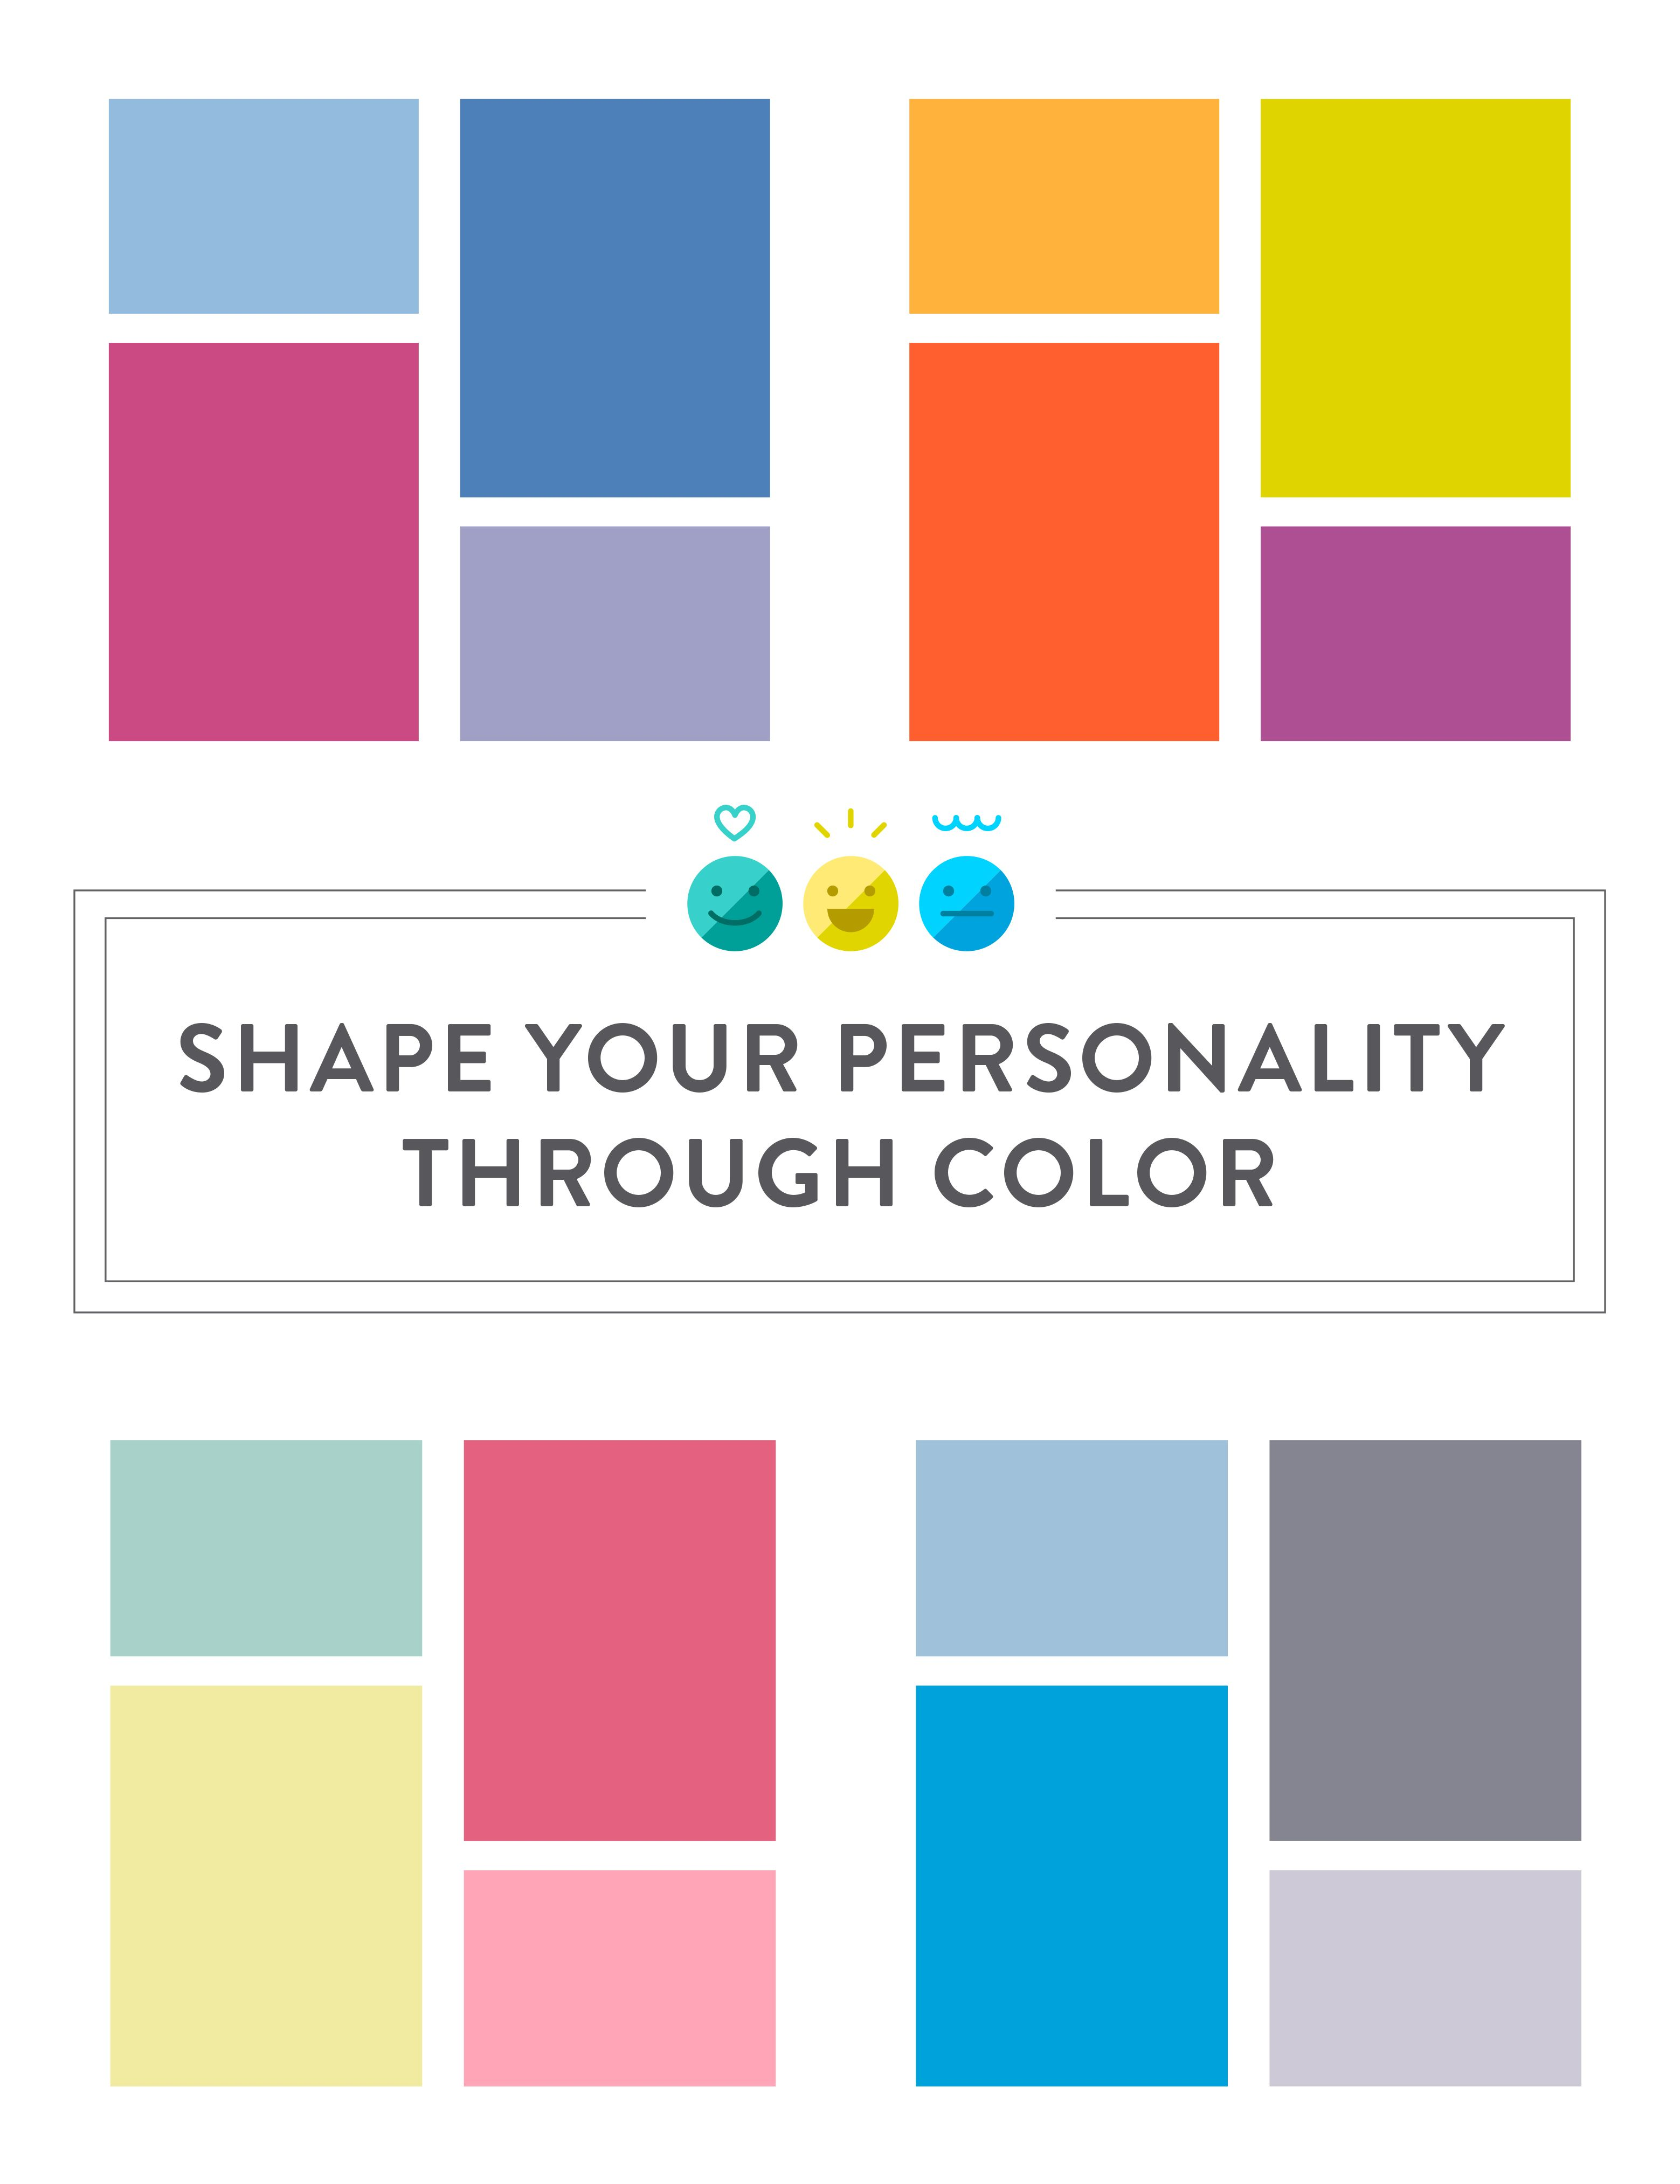 Discover your color personality using the Bora Bora Post-it Color Collection, and show the world just how great you are.